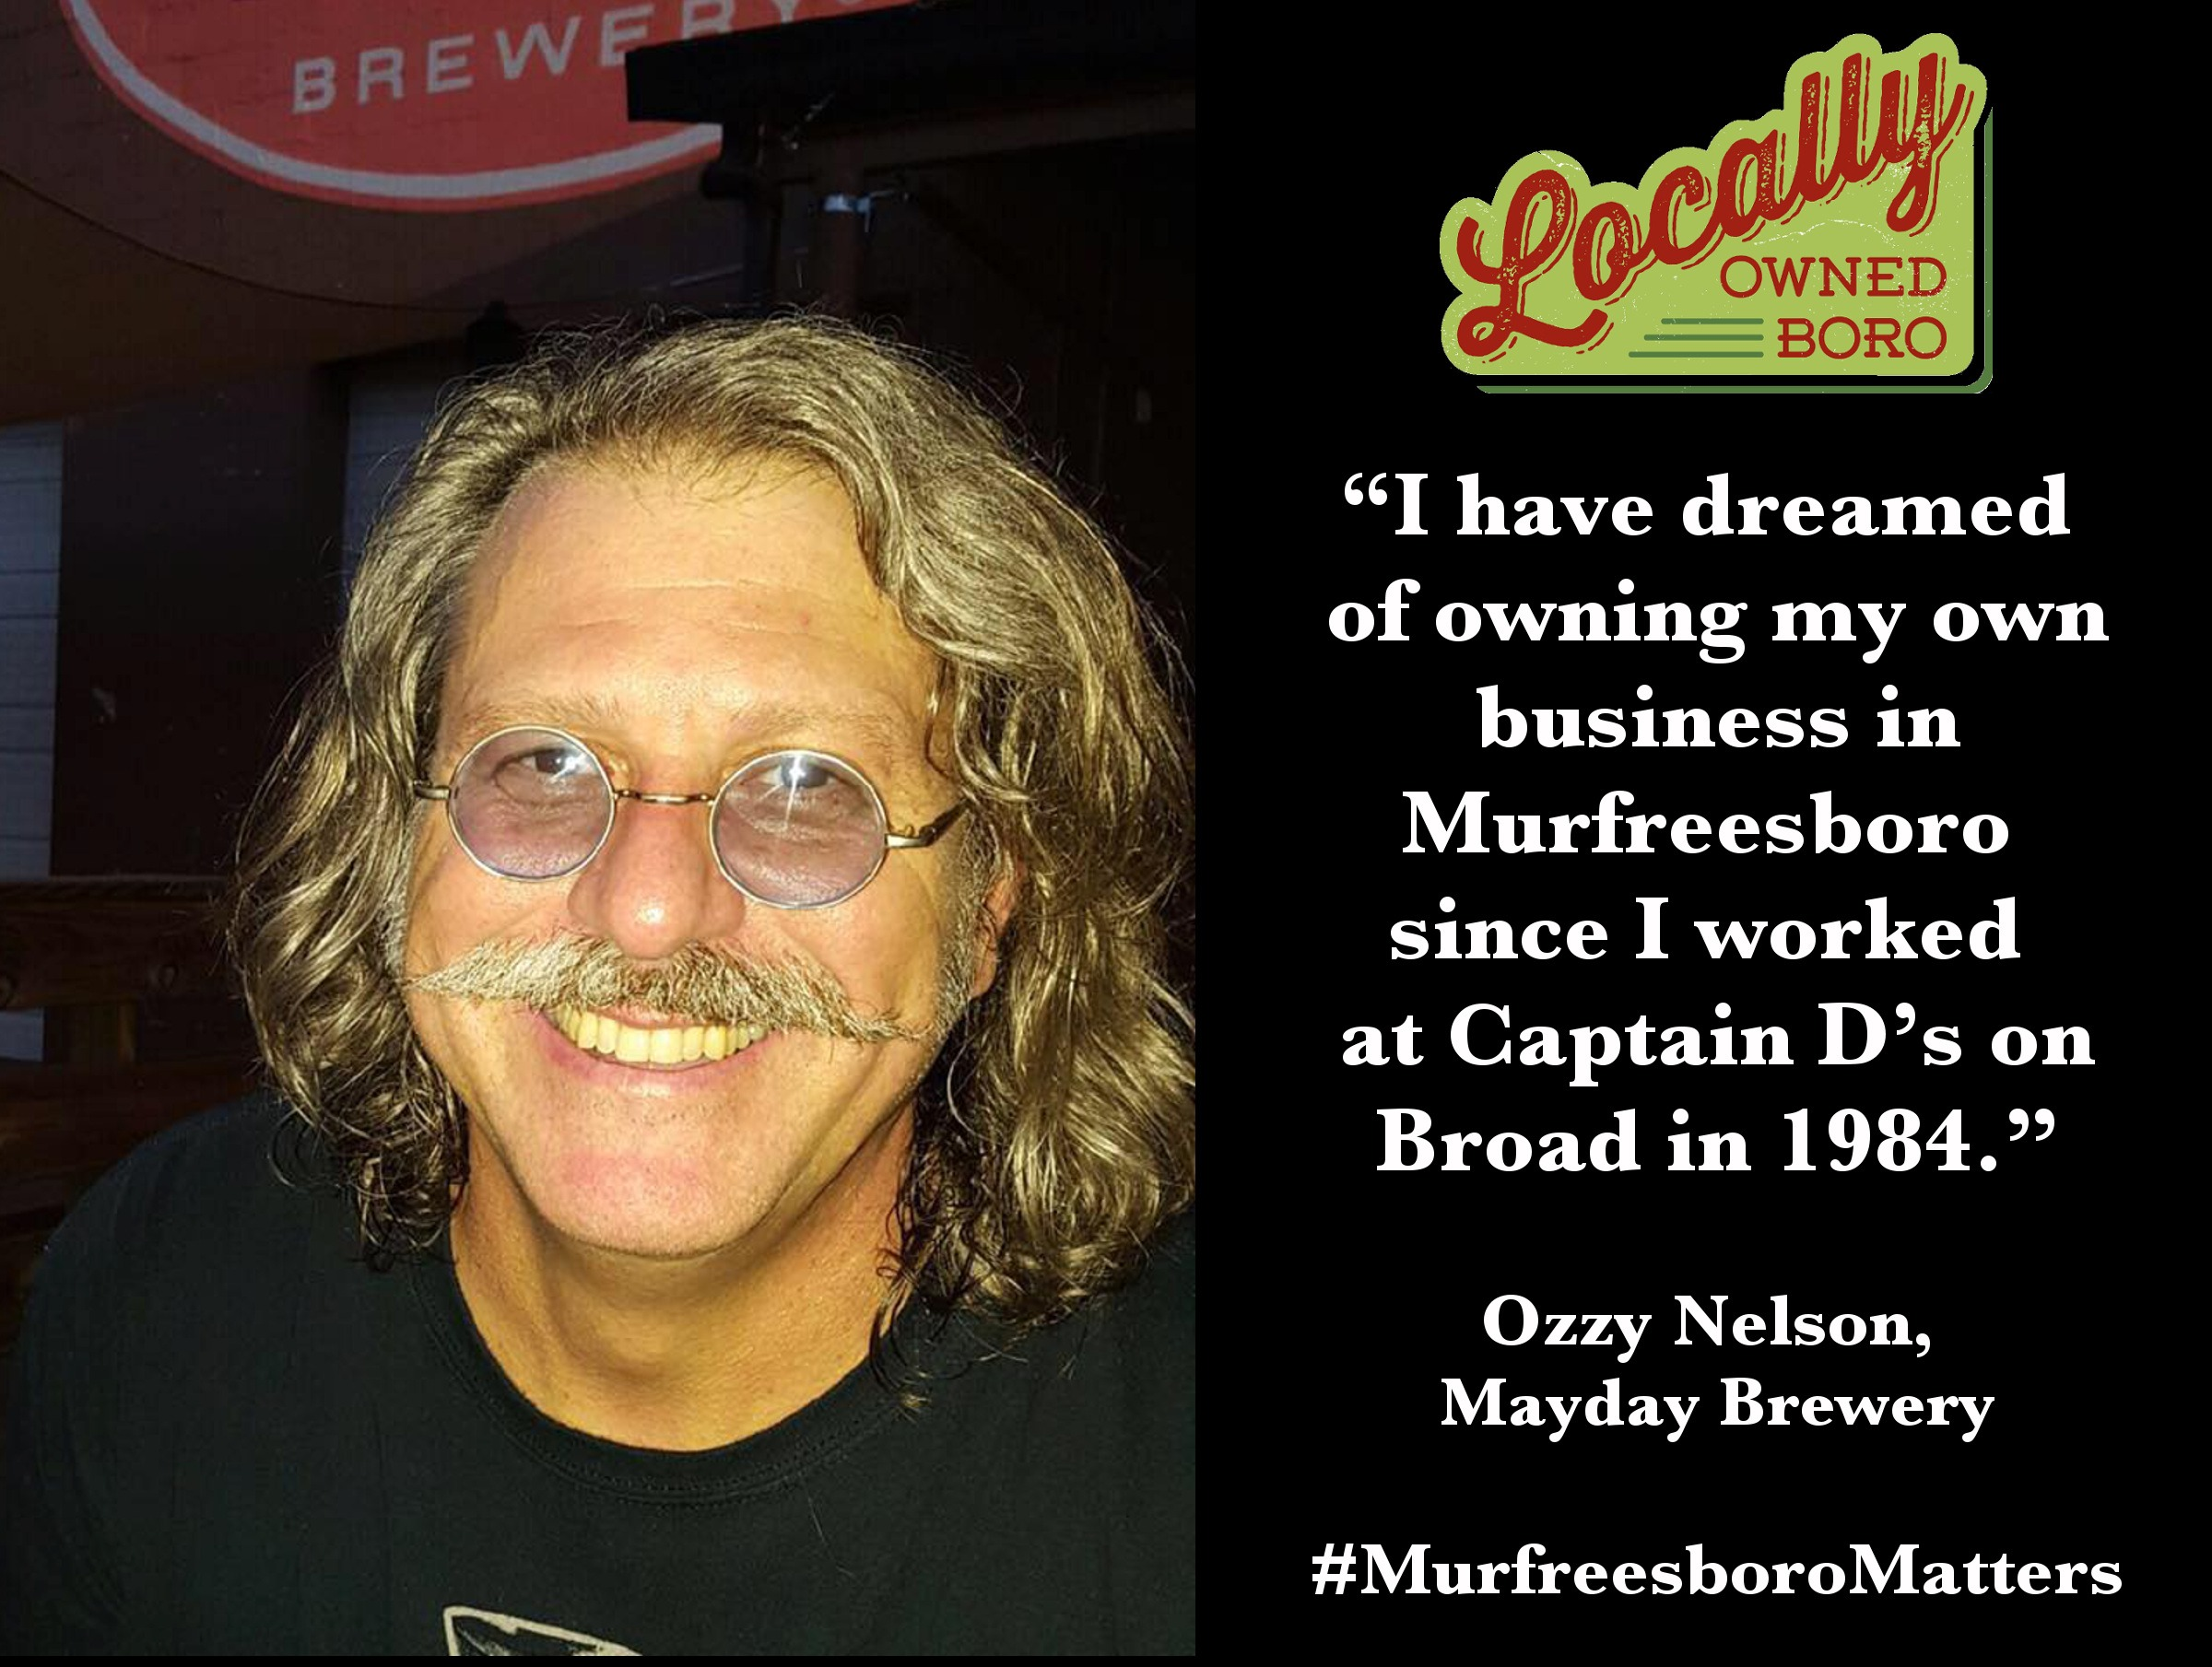 Ozzy Nelson, founder of Mayday Brewery